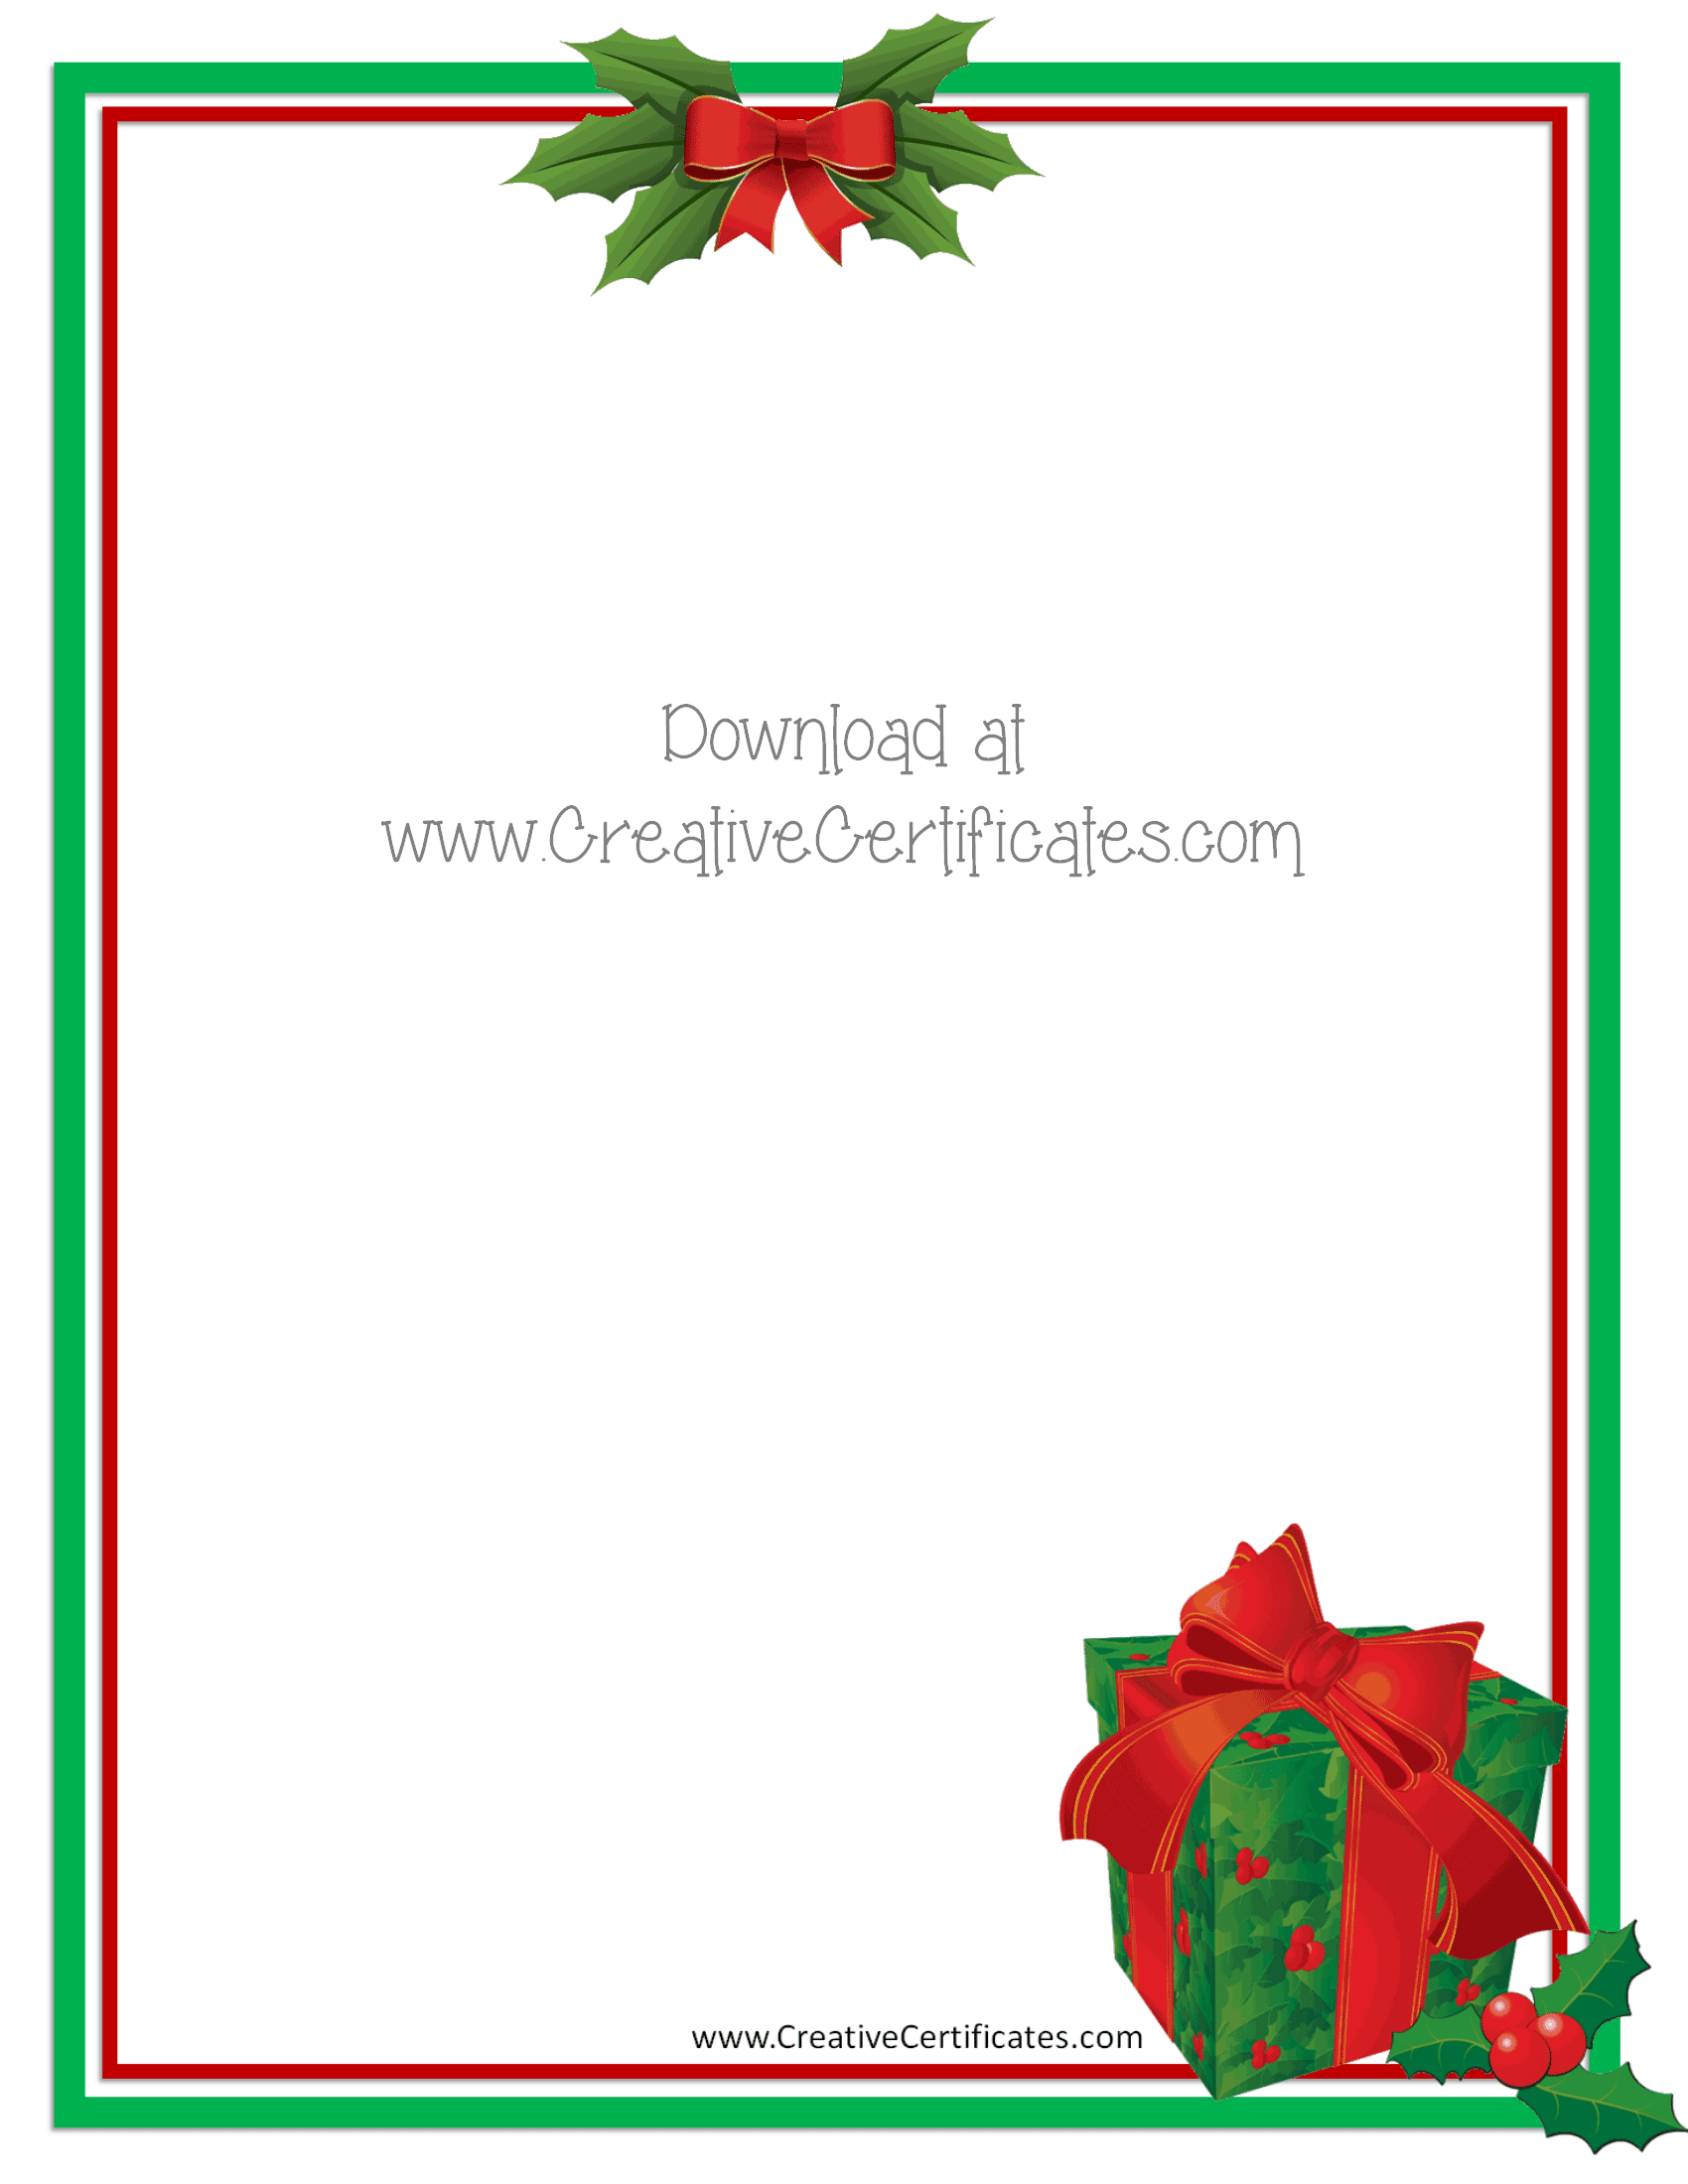 Free christmas border templates customize online then download green and red border with a clip art picture of a gift alramifo Image collections